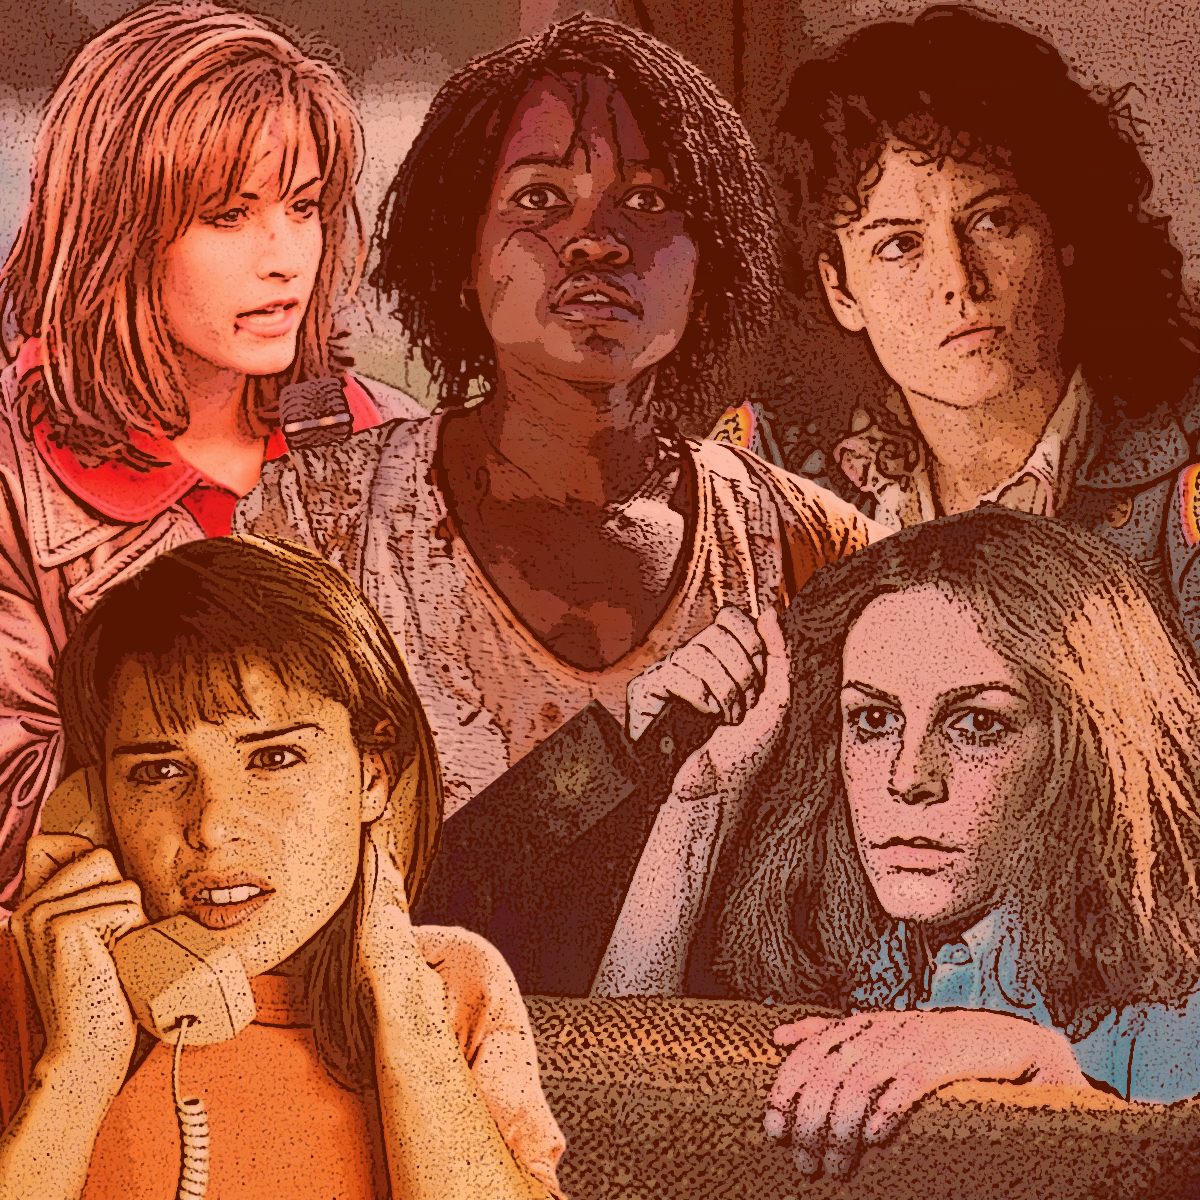 From Jamie Lee Curtis to Jennifer Love Hewitt: Our Favorite Final Girls